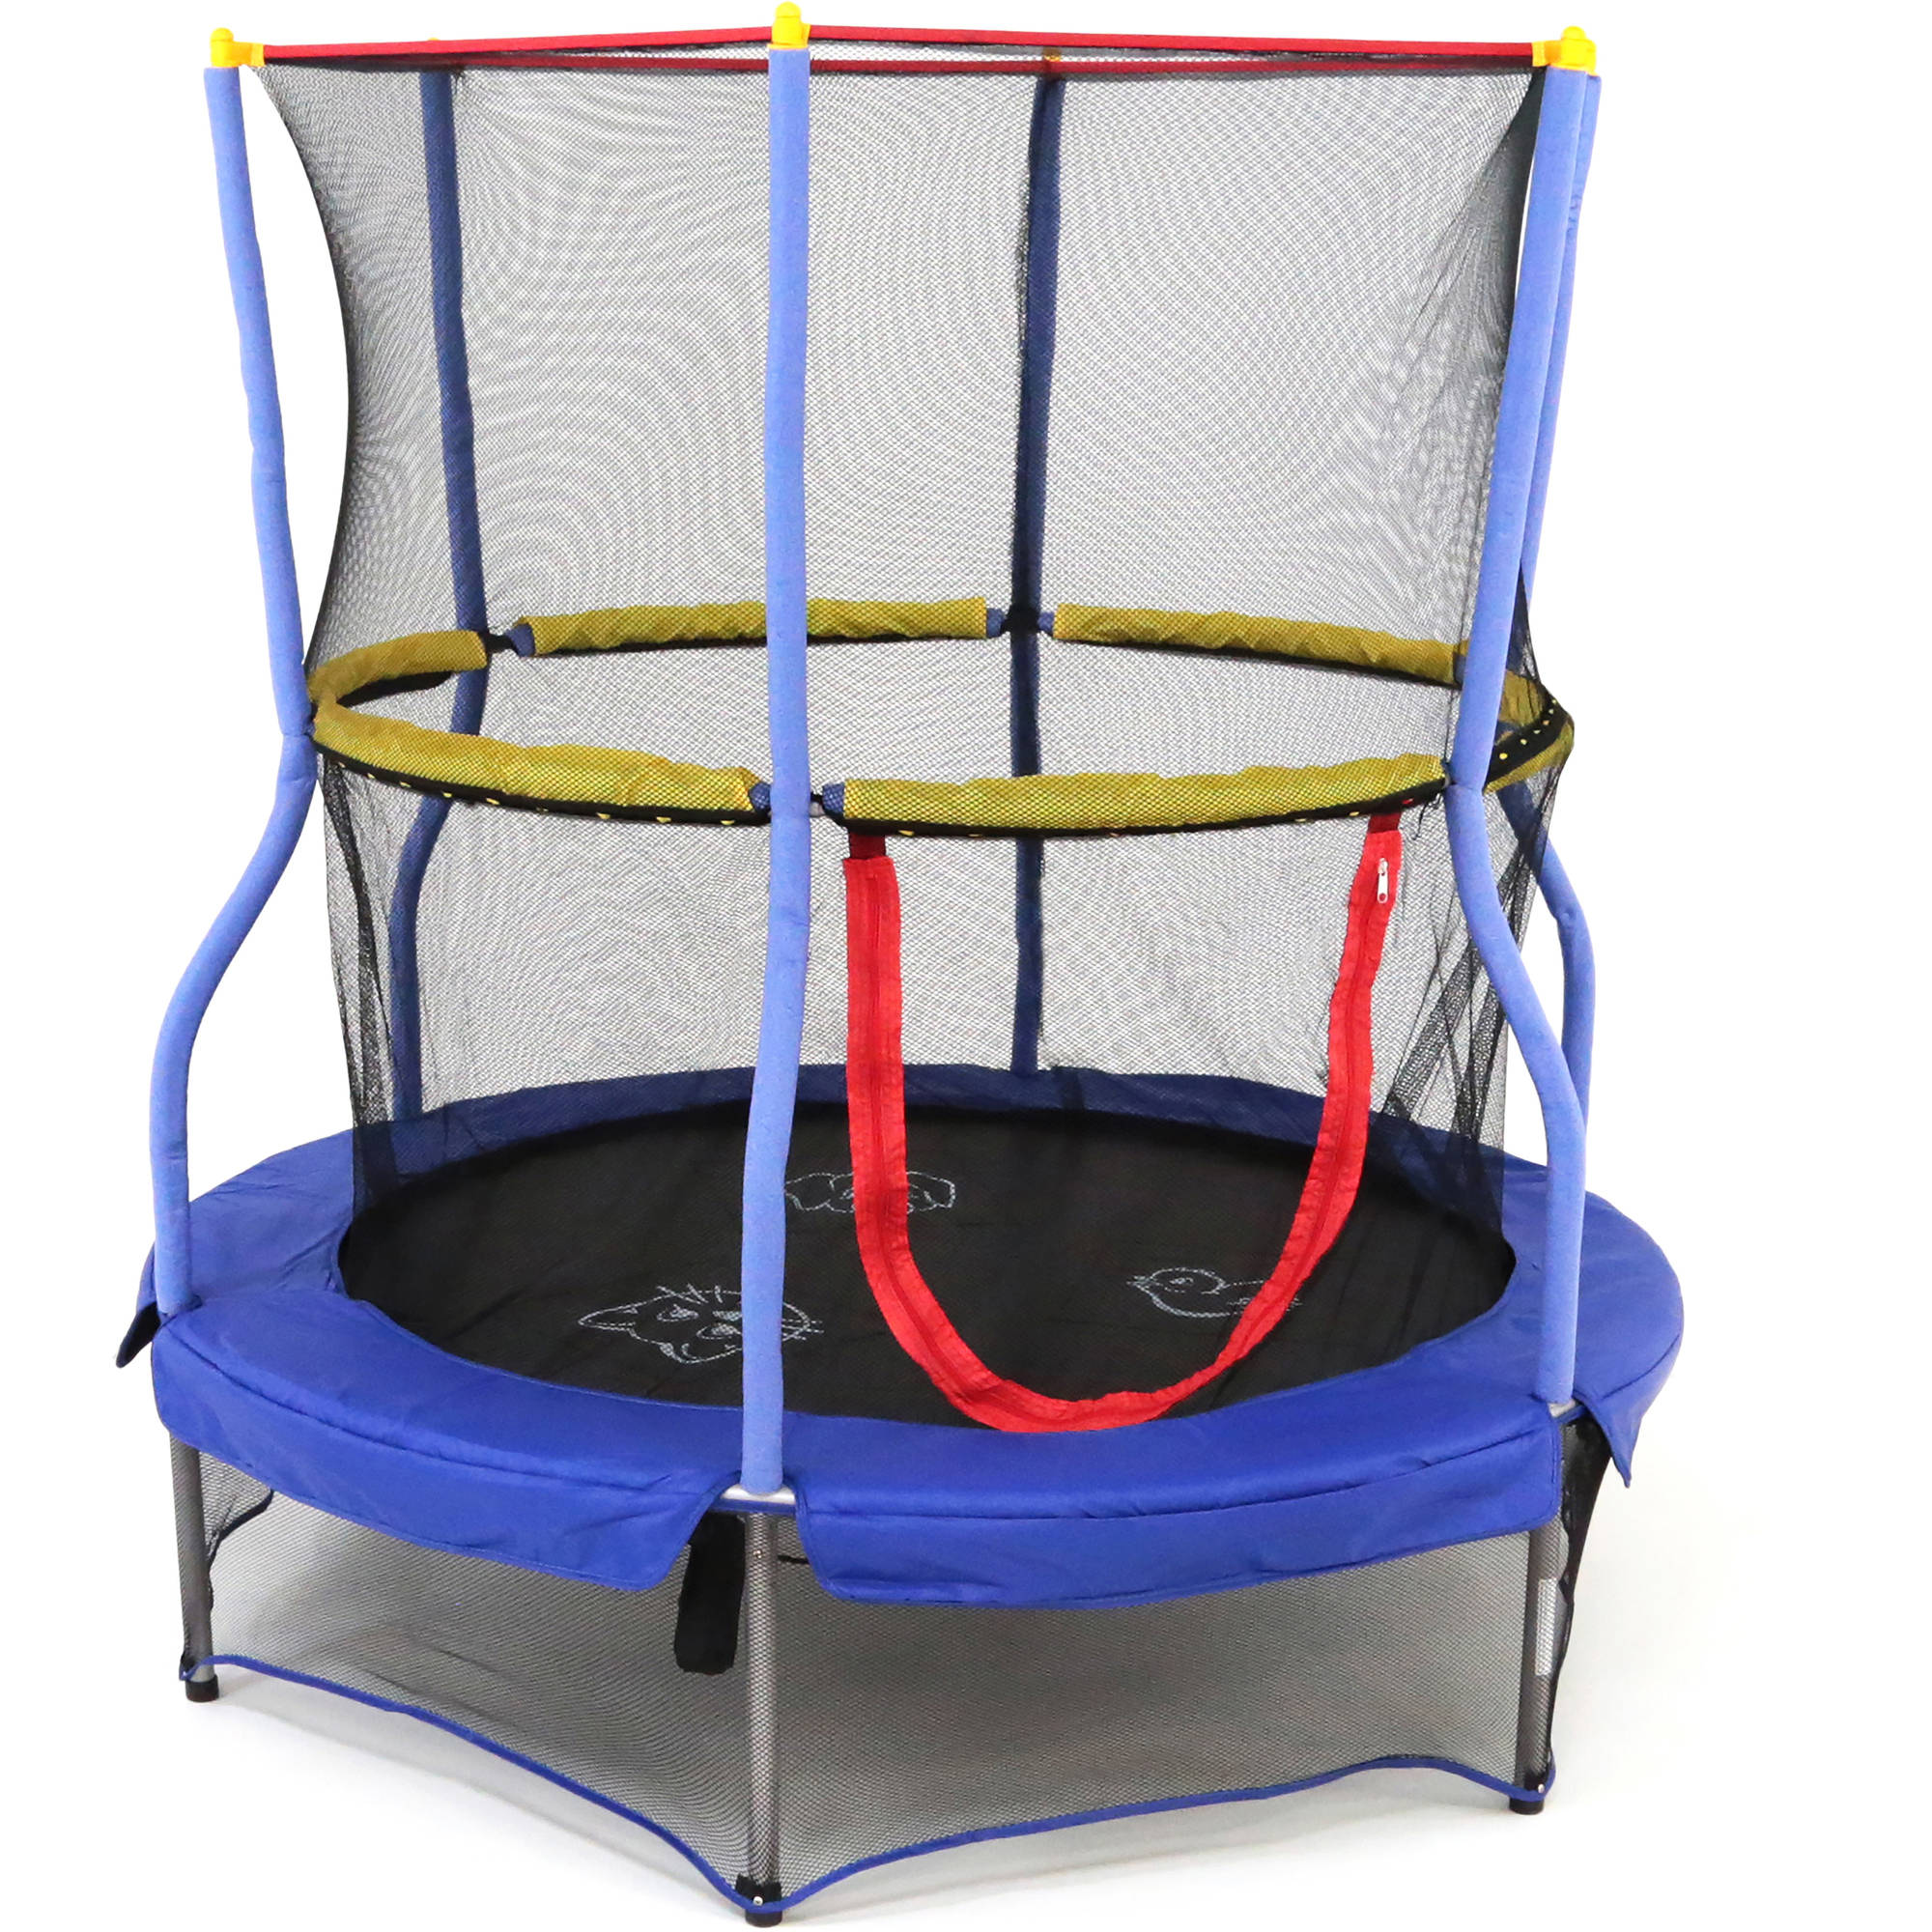 Skywalker Tr&olines 55-Inch Bounce-N-Learn Interactive Mini Bouncer Tr&oline with  sc 1 st  Walmart & Skywalker Trampolines 55-Inch Bounce-N-Learn Interactive Mini ...